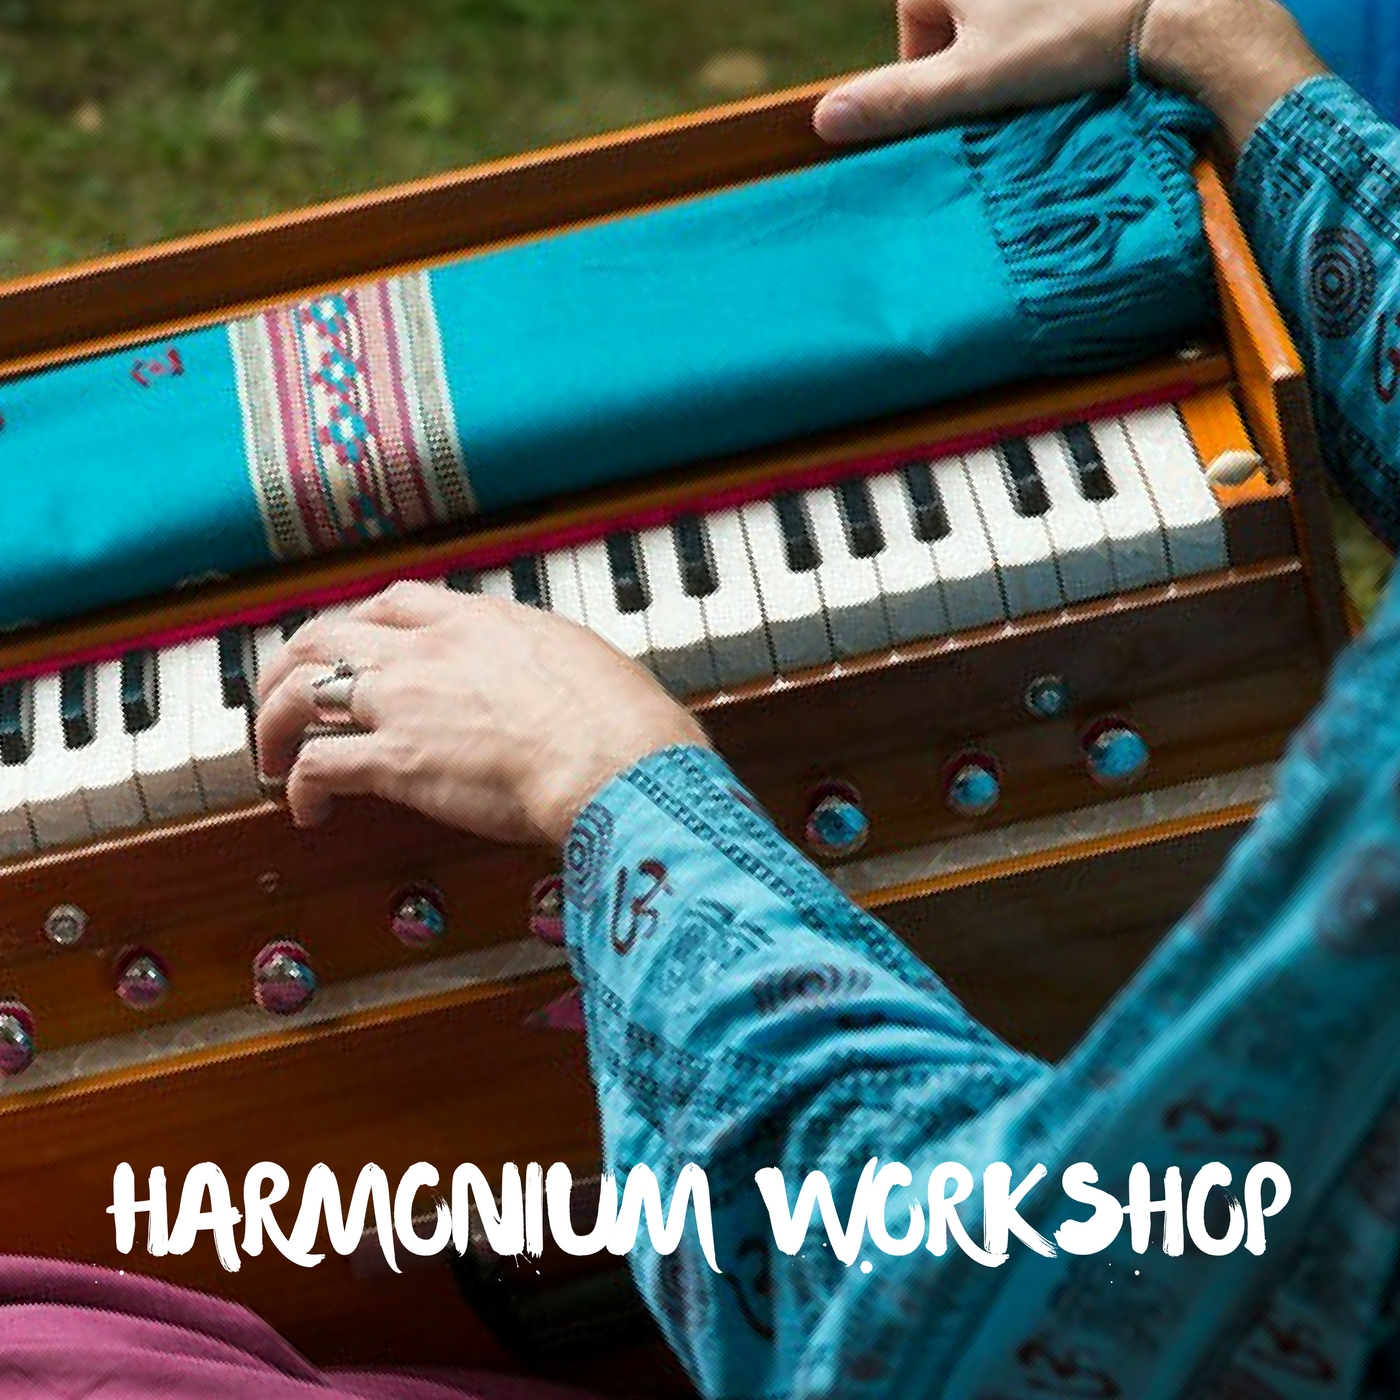 LANCASHIRE - Harmonium Workshop